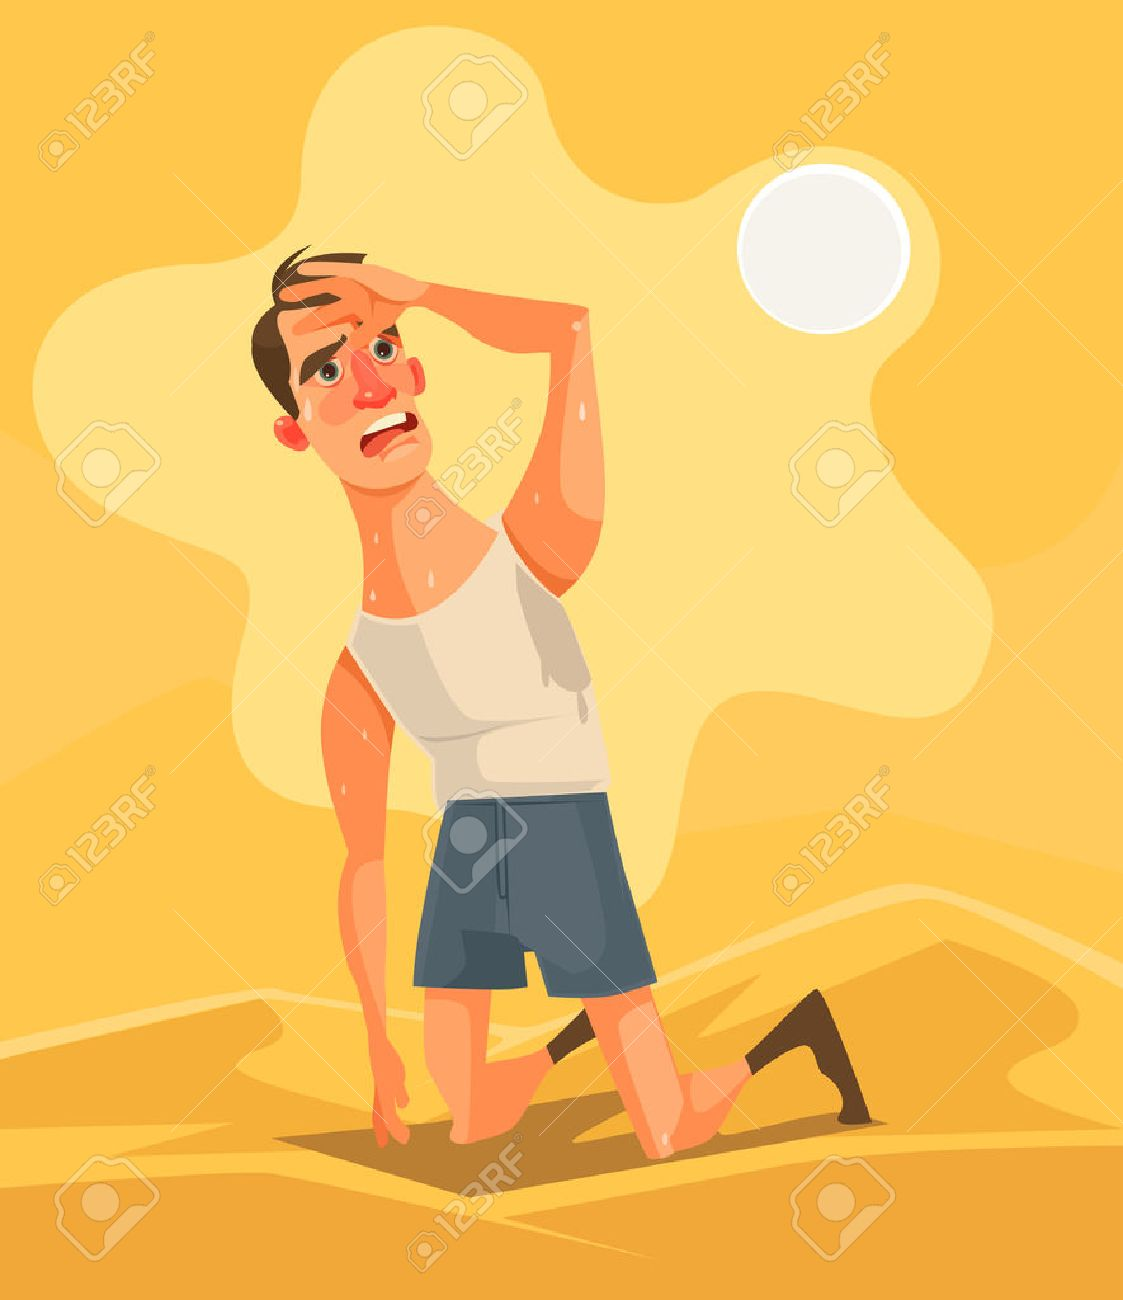 Hot weather and summer day. Tired unhappy man character in desert. Vector flat cartoon illustration - 75020242